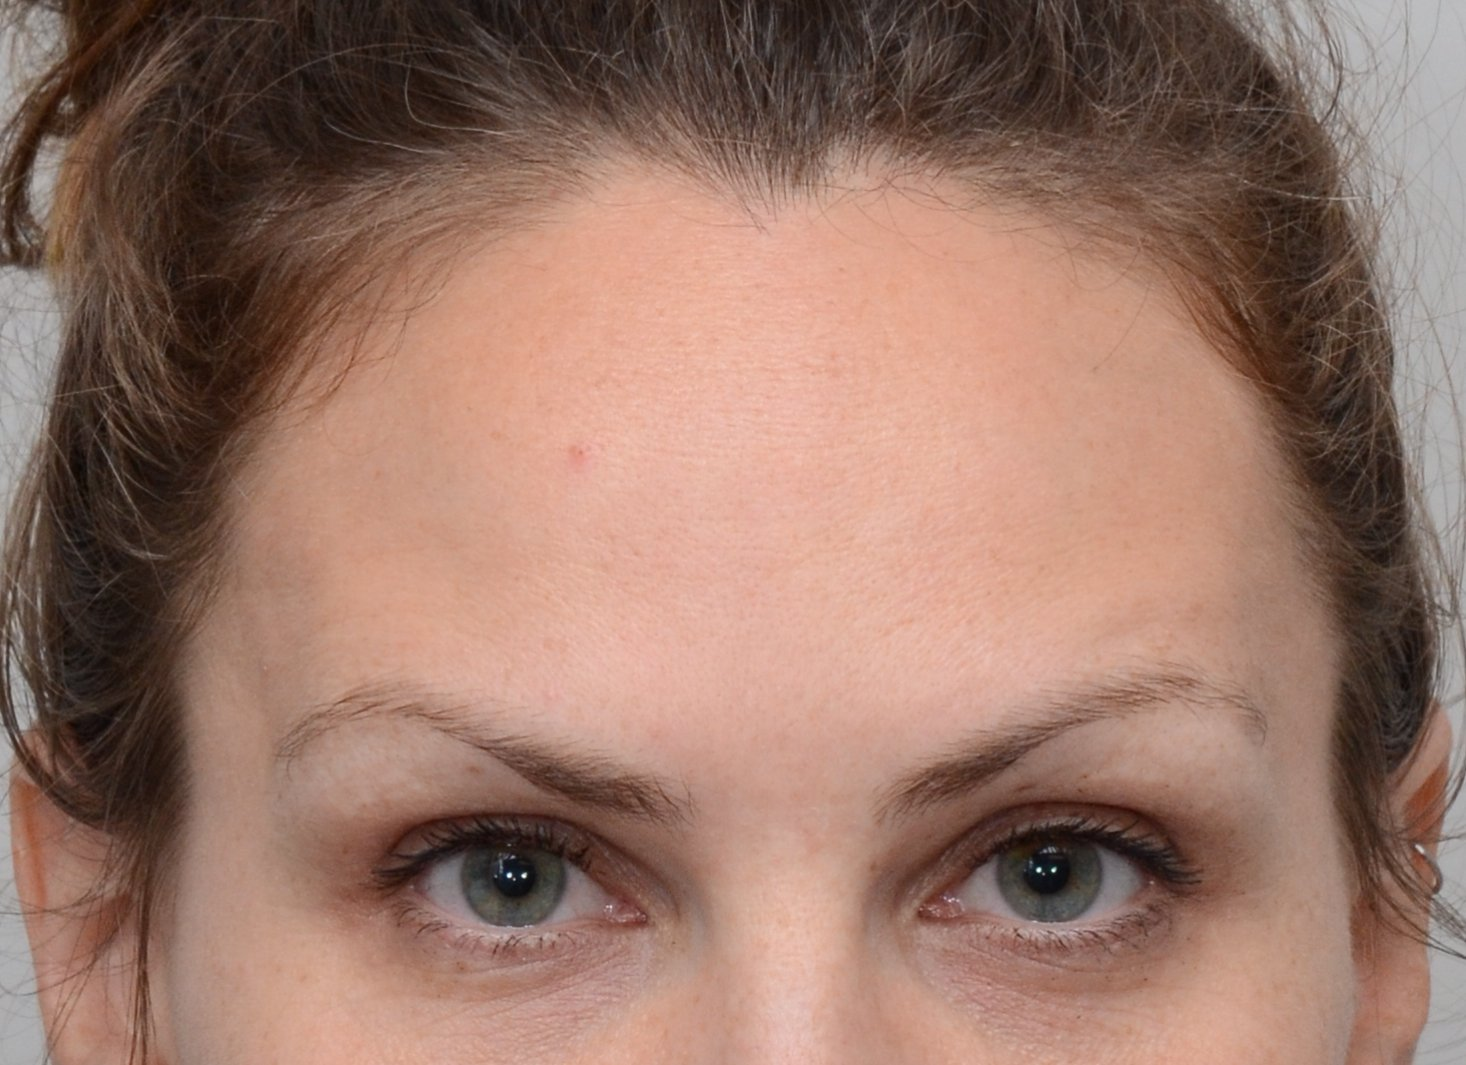 Patient picture after Botox at Nuance Facial Plastics